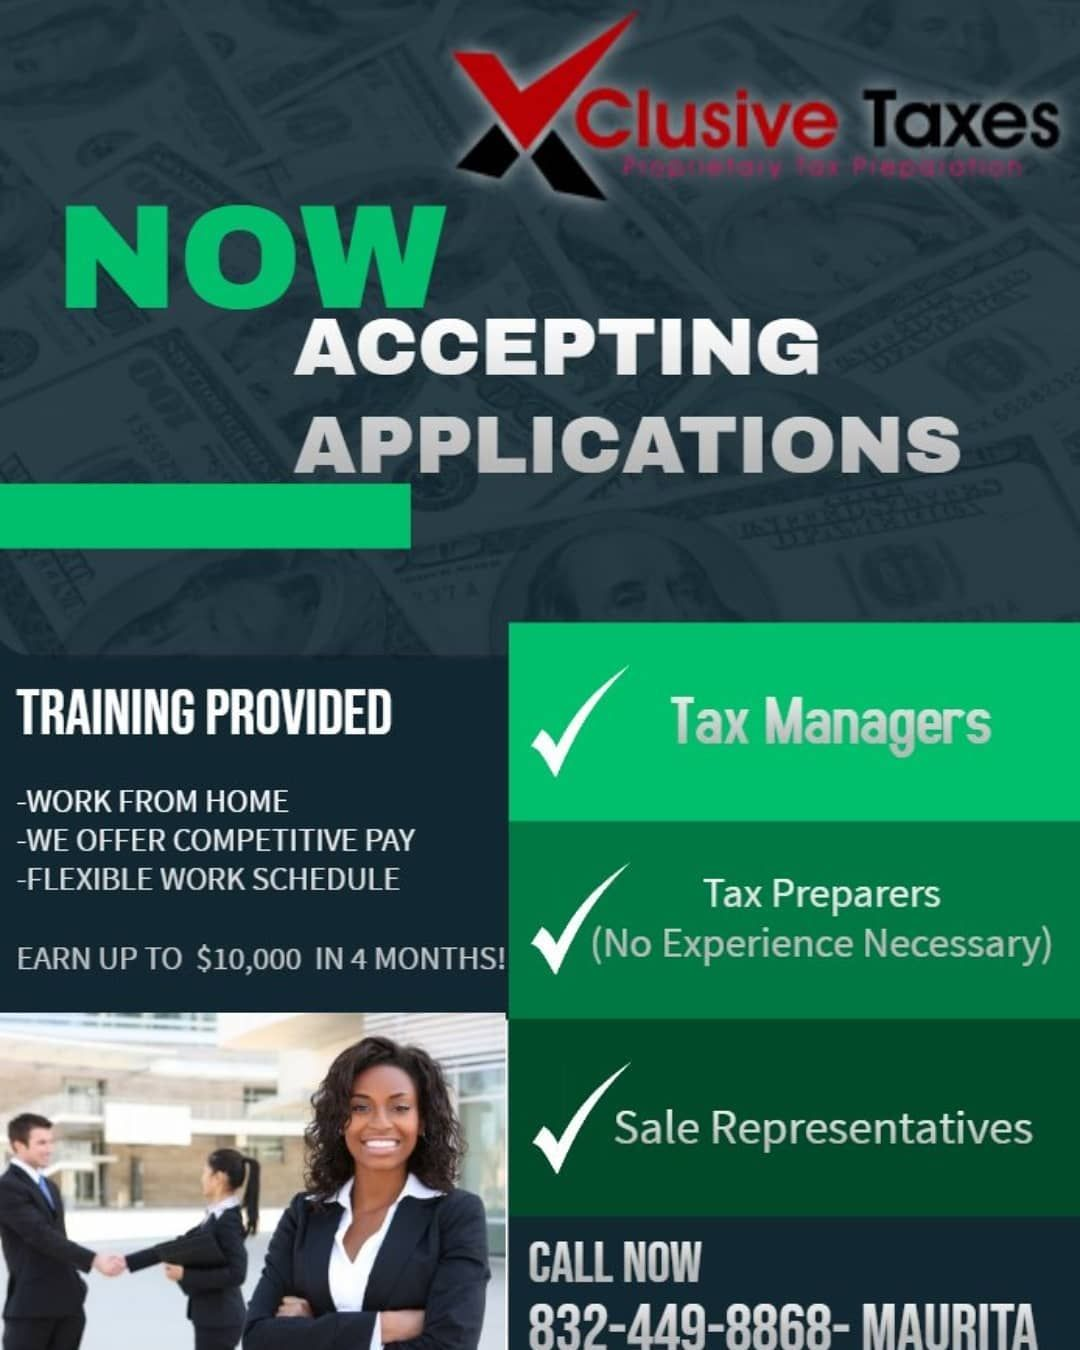 We Are Now Accepting Applications For The Upcoming Tax Season 2020